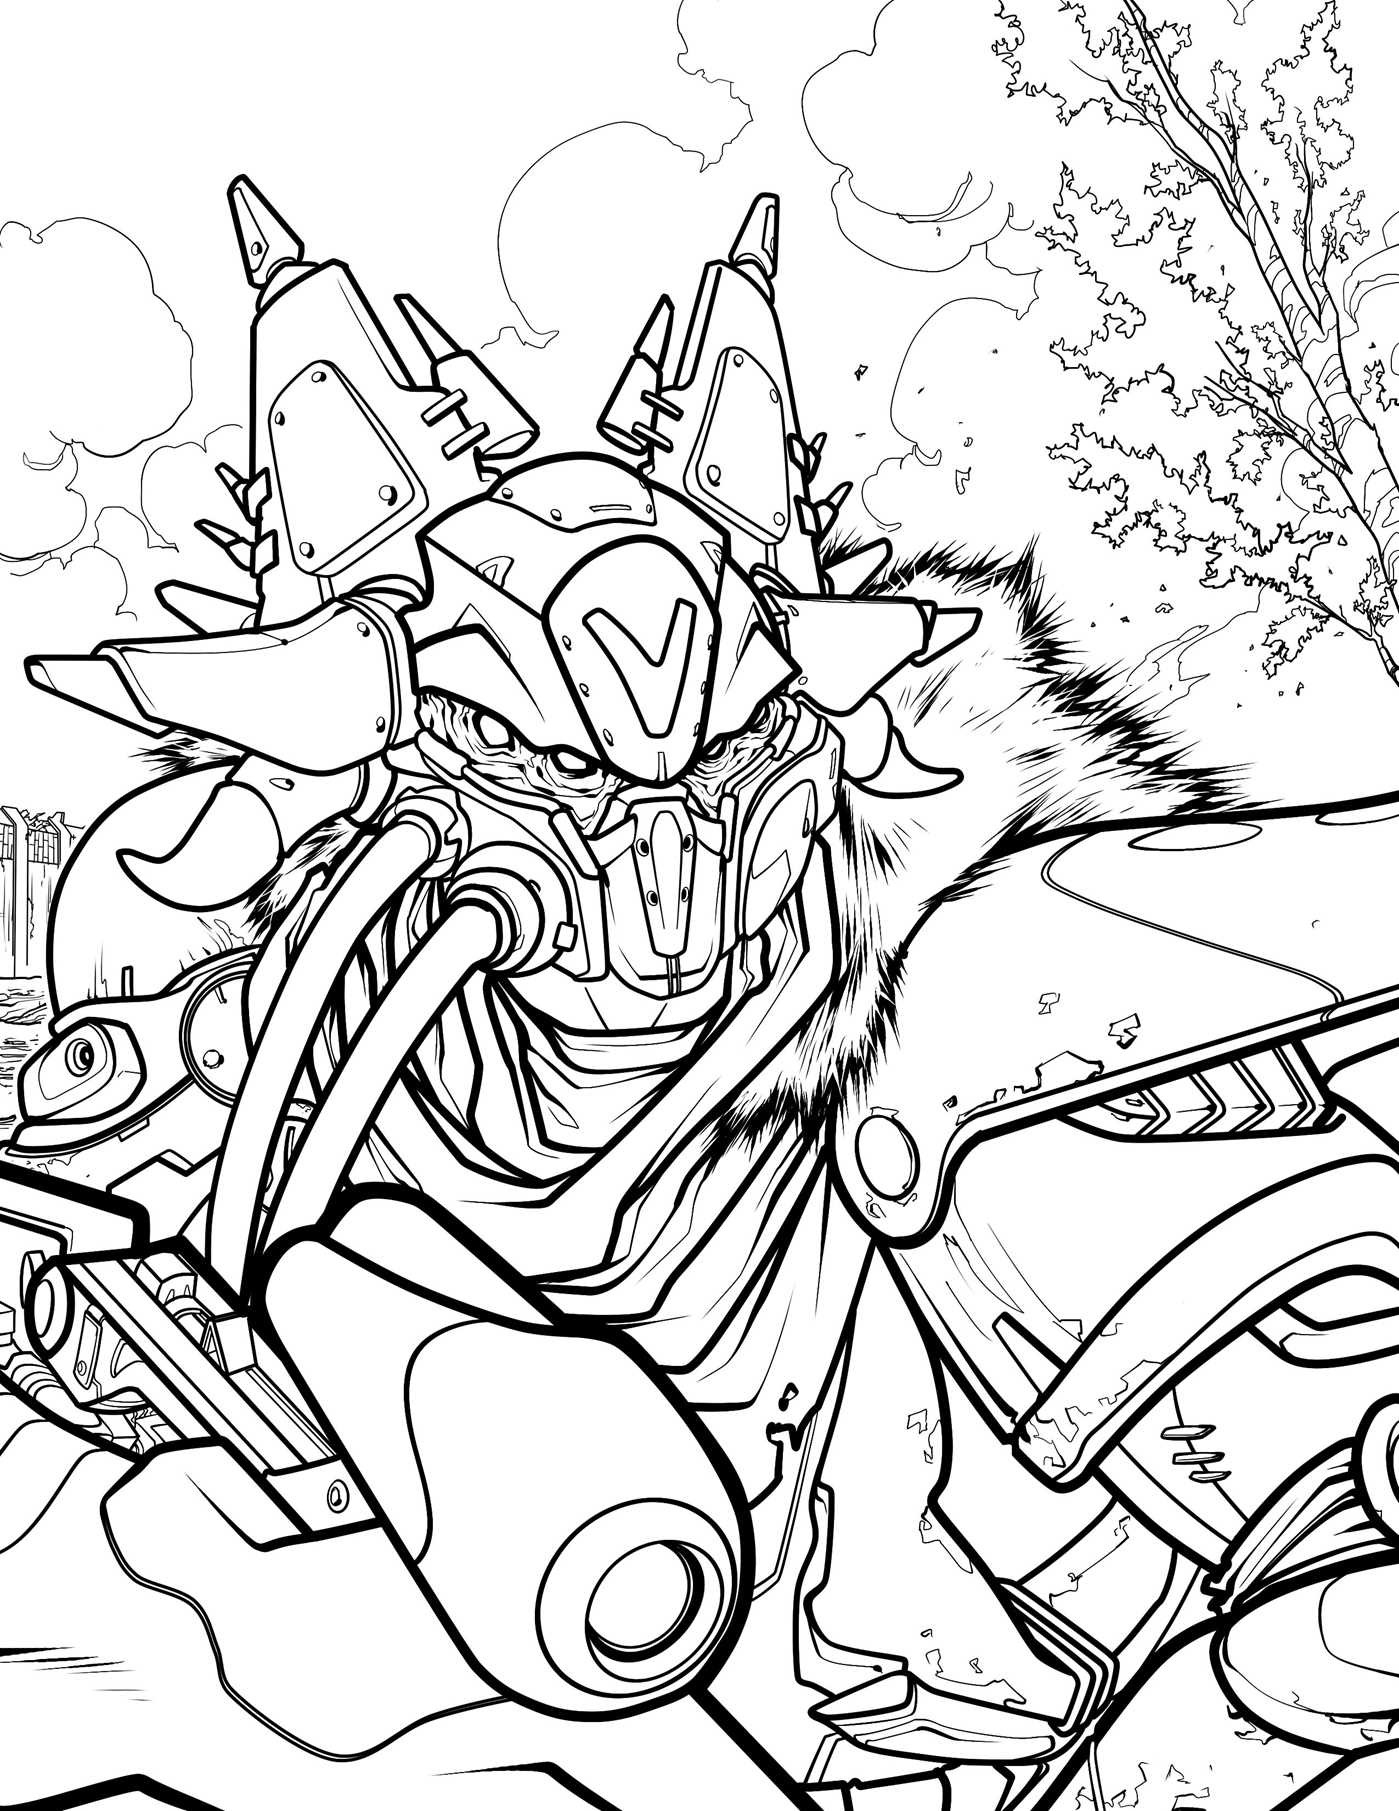 destiny characters hunter coloring pages - photo#31